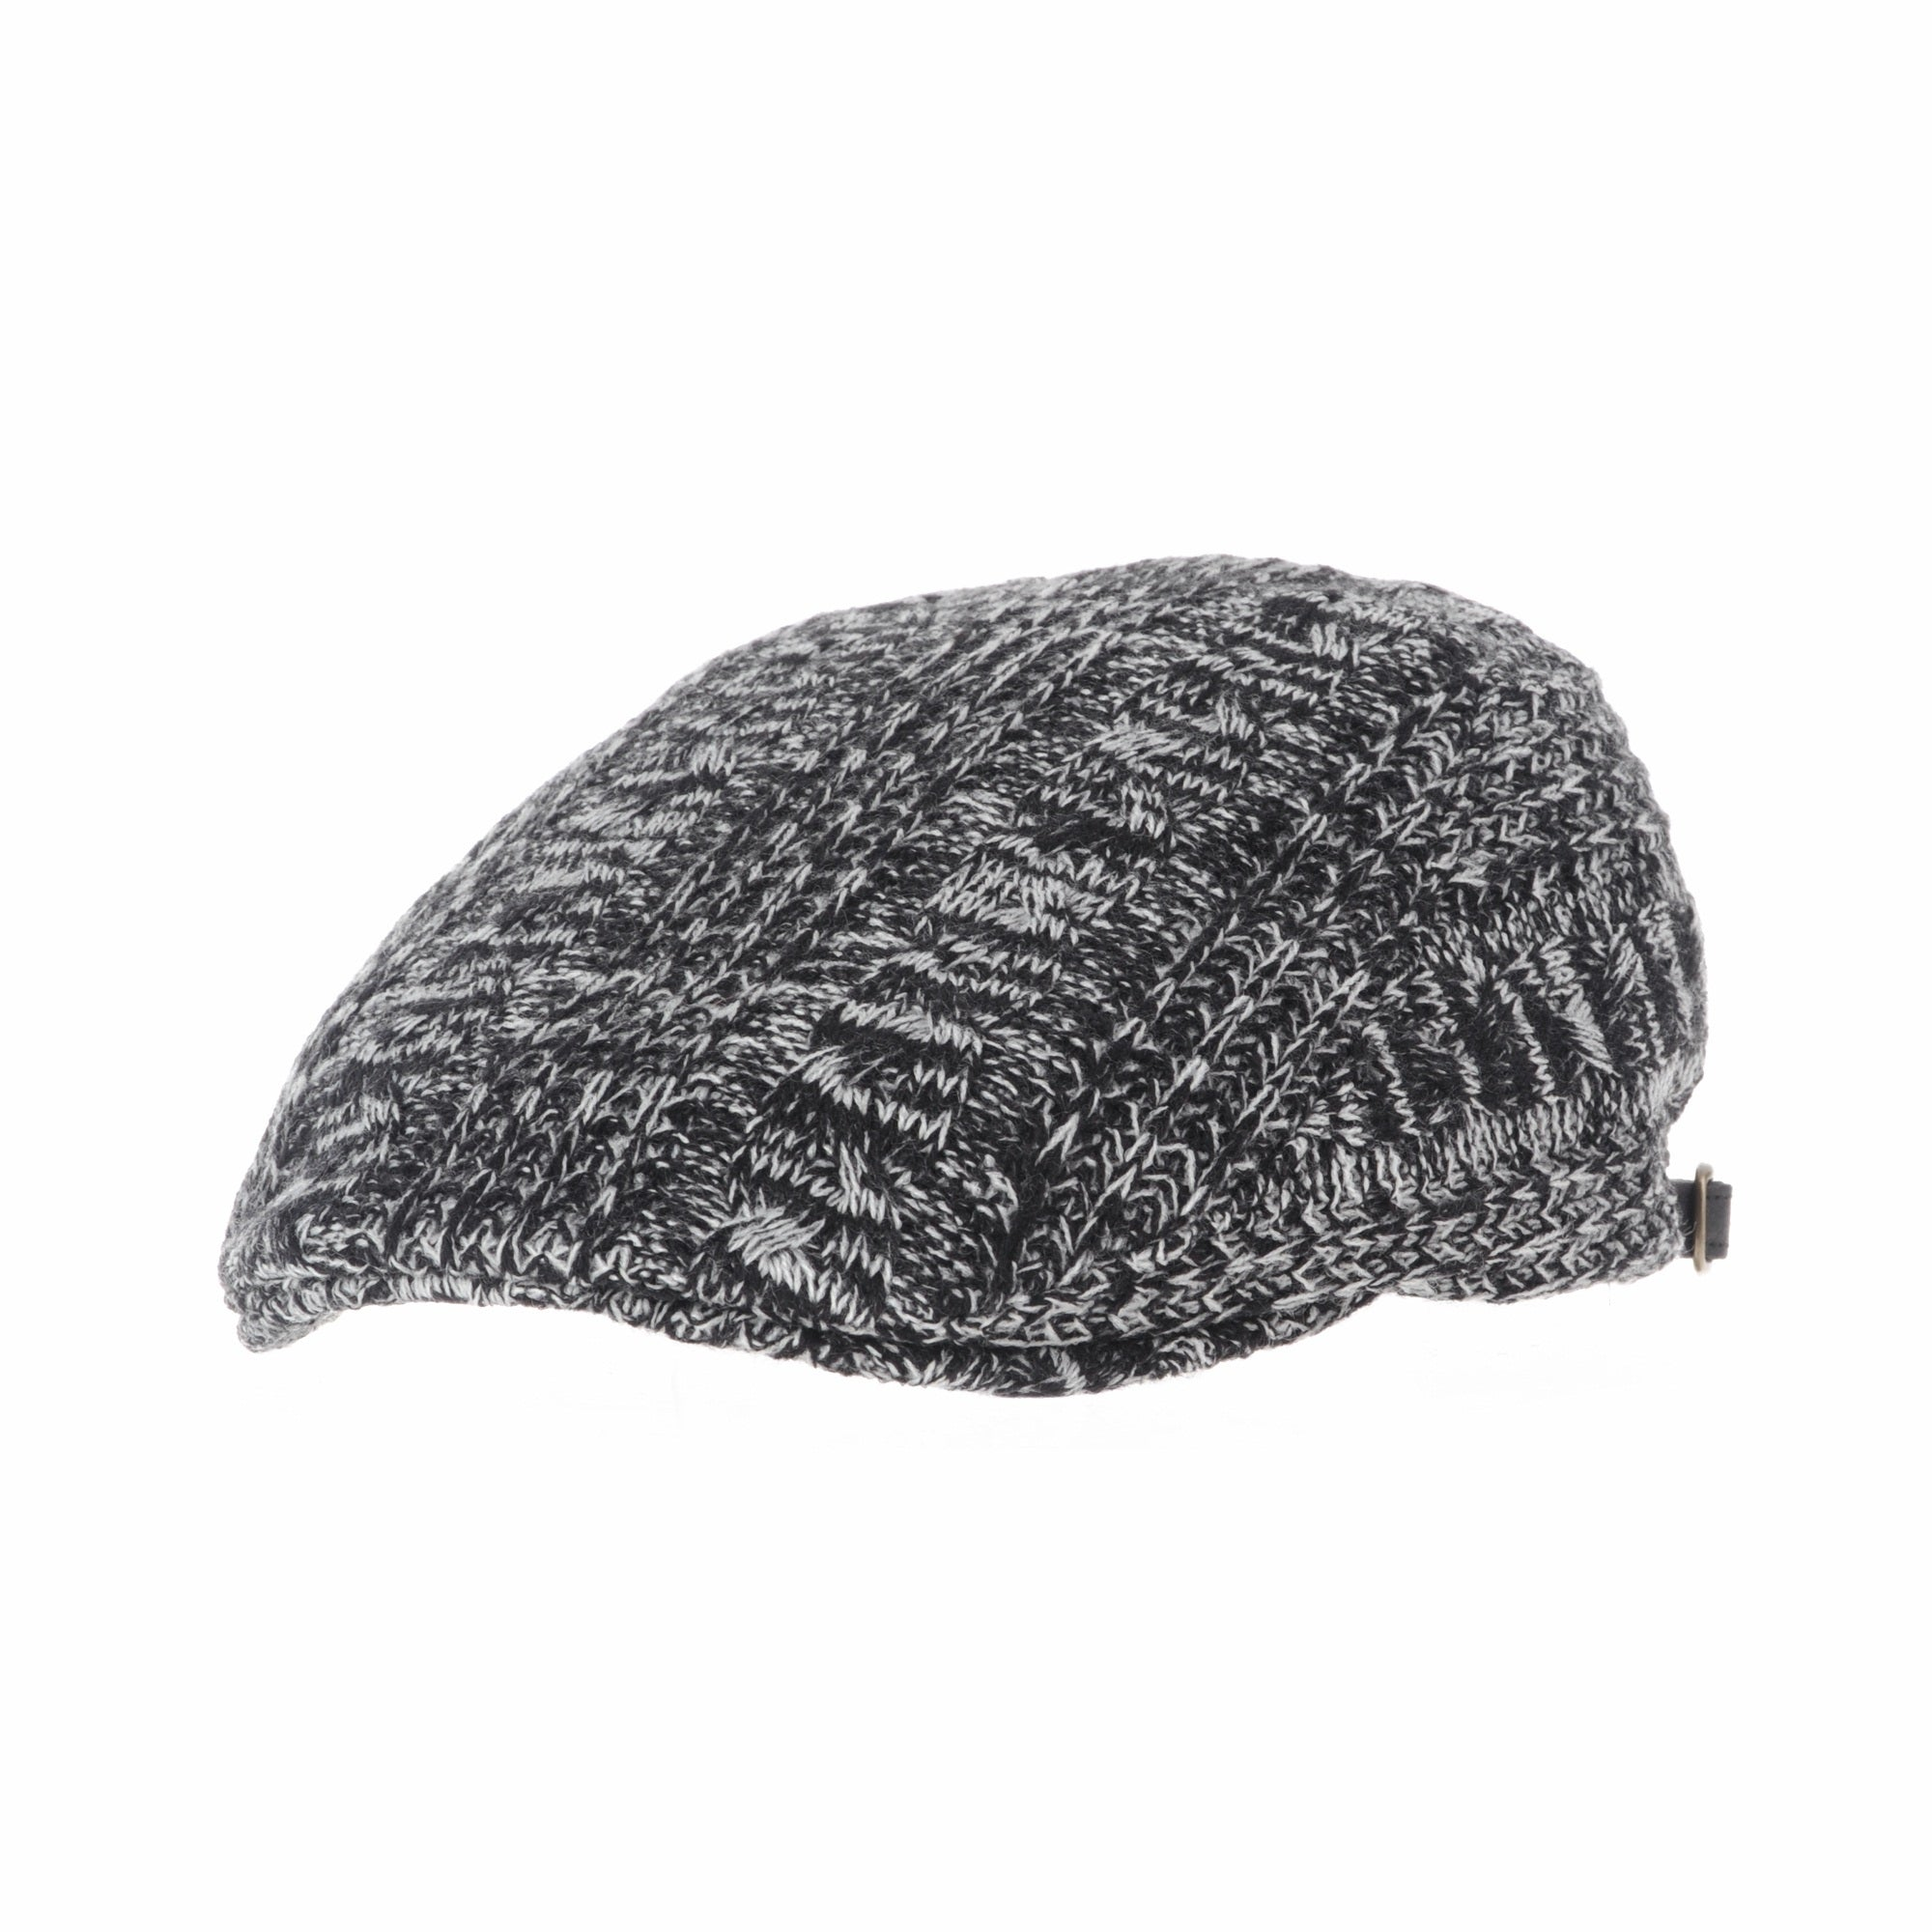 Knitted Twisted Cable Pattern Newsboy Hat Flat Cap